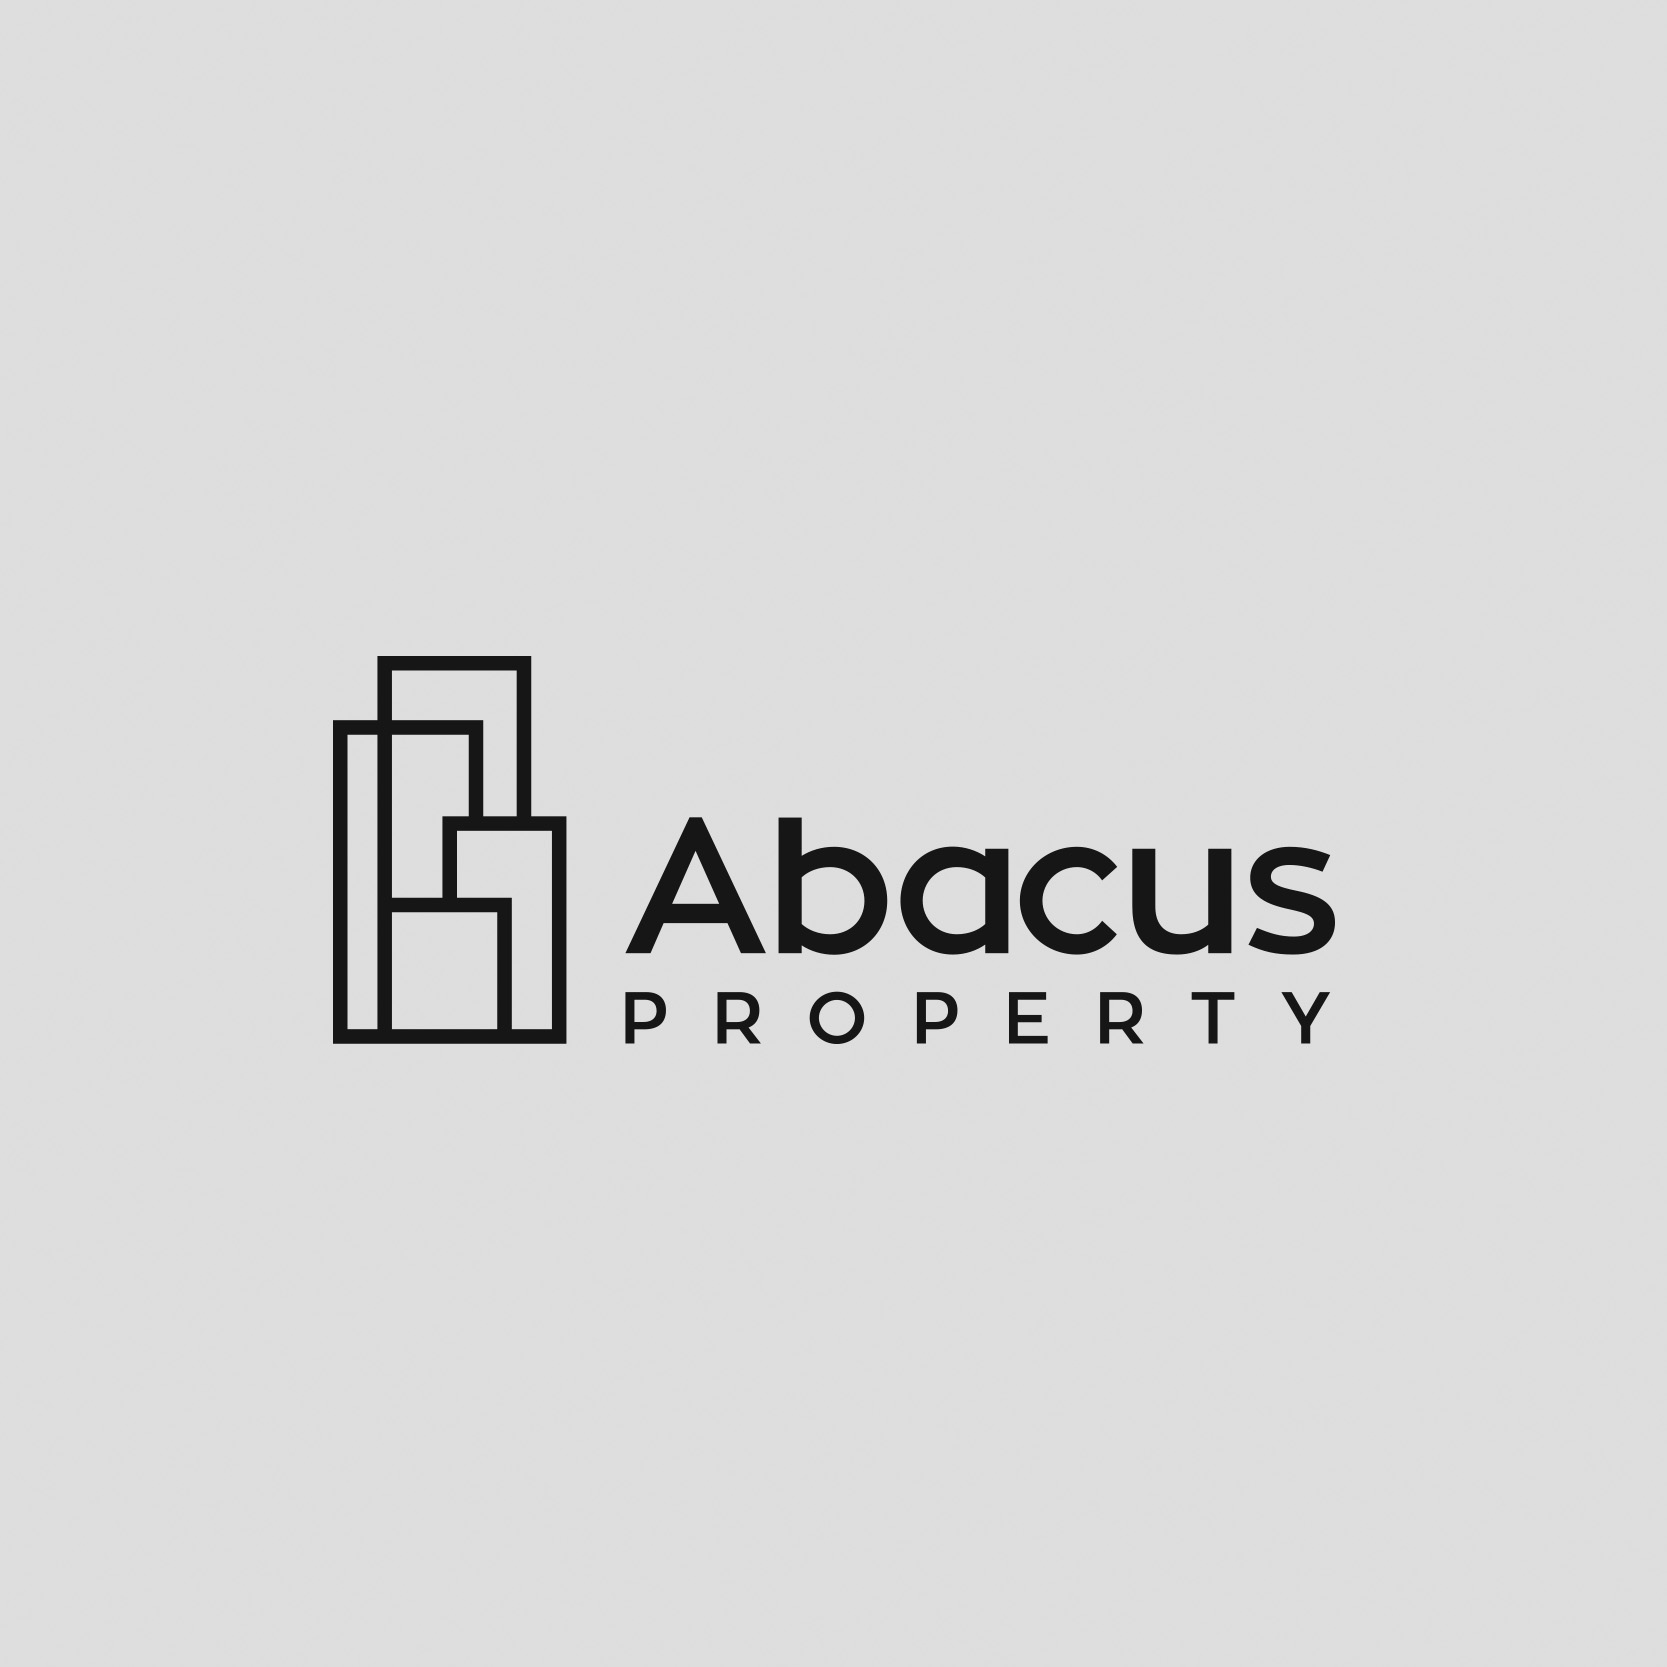 Abacus Property